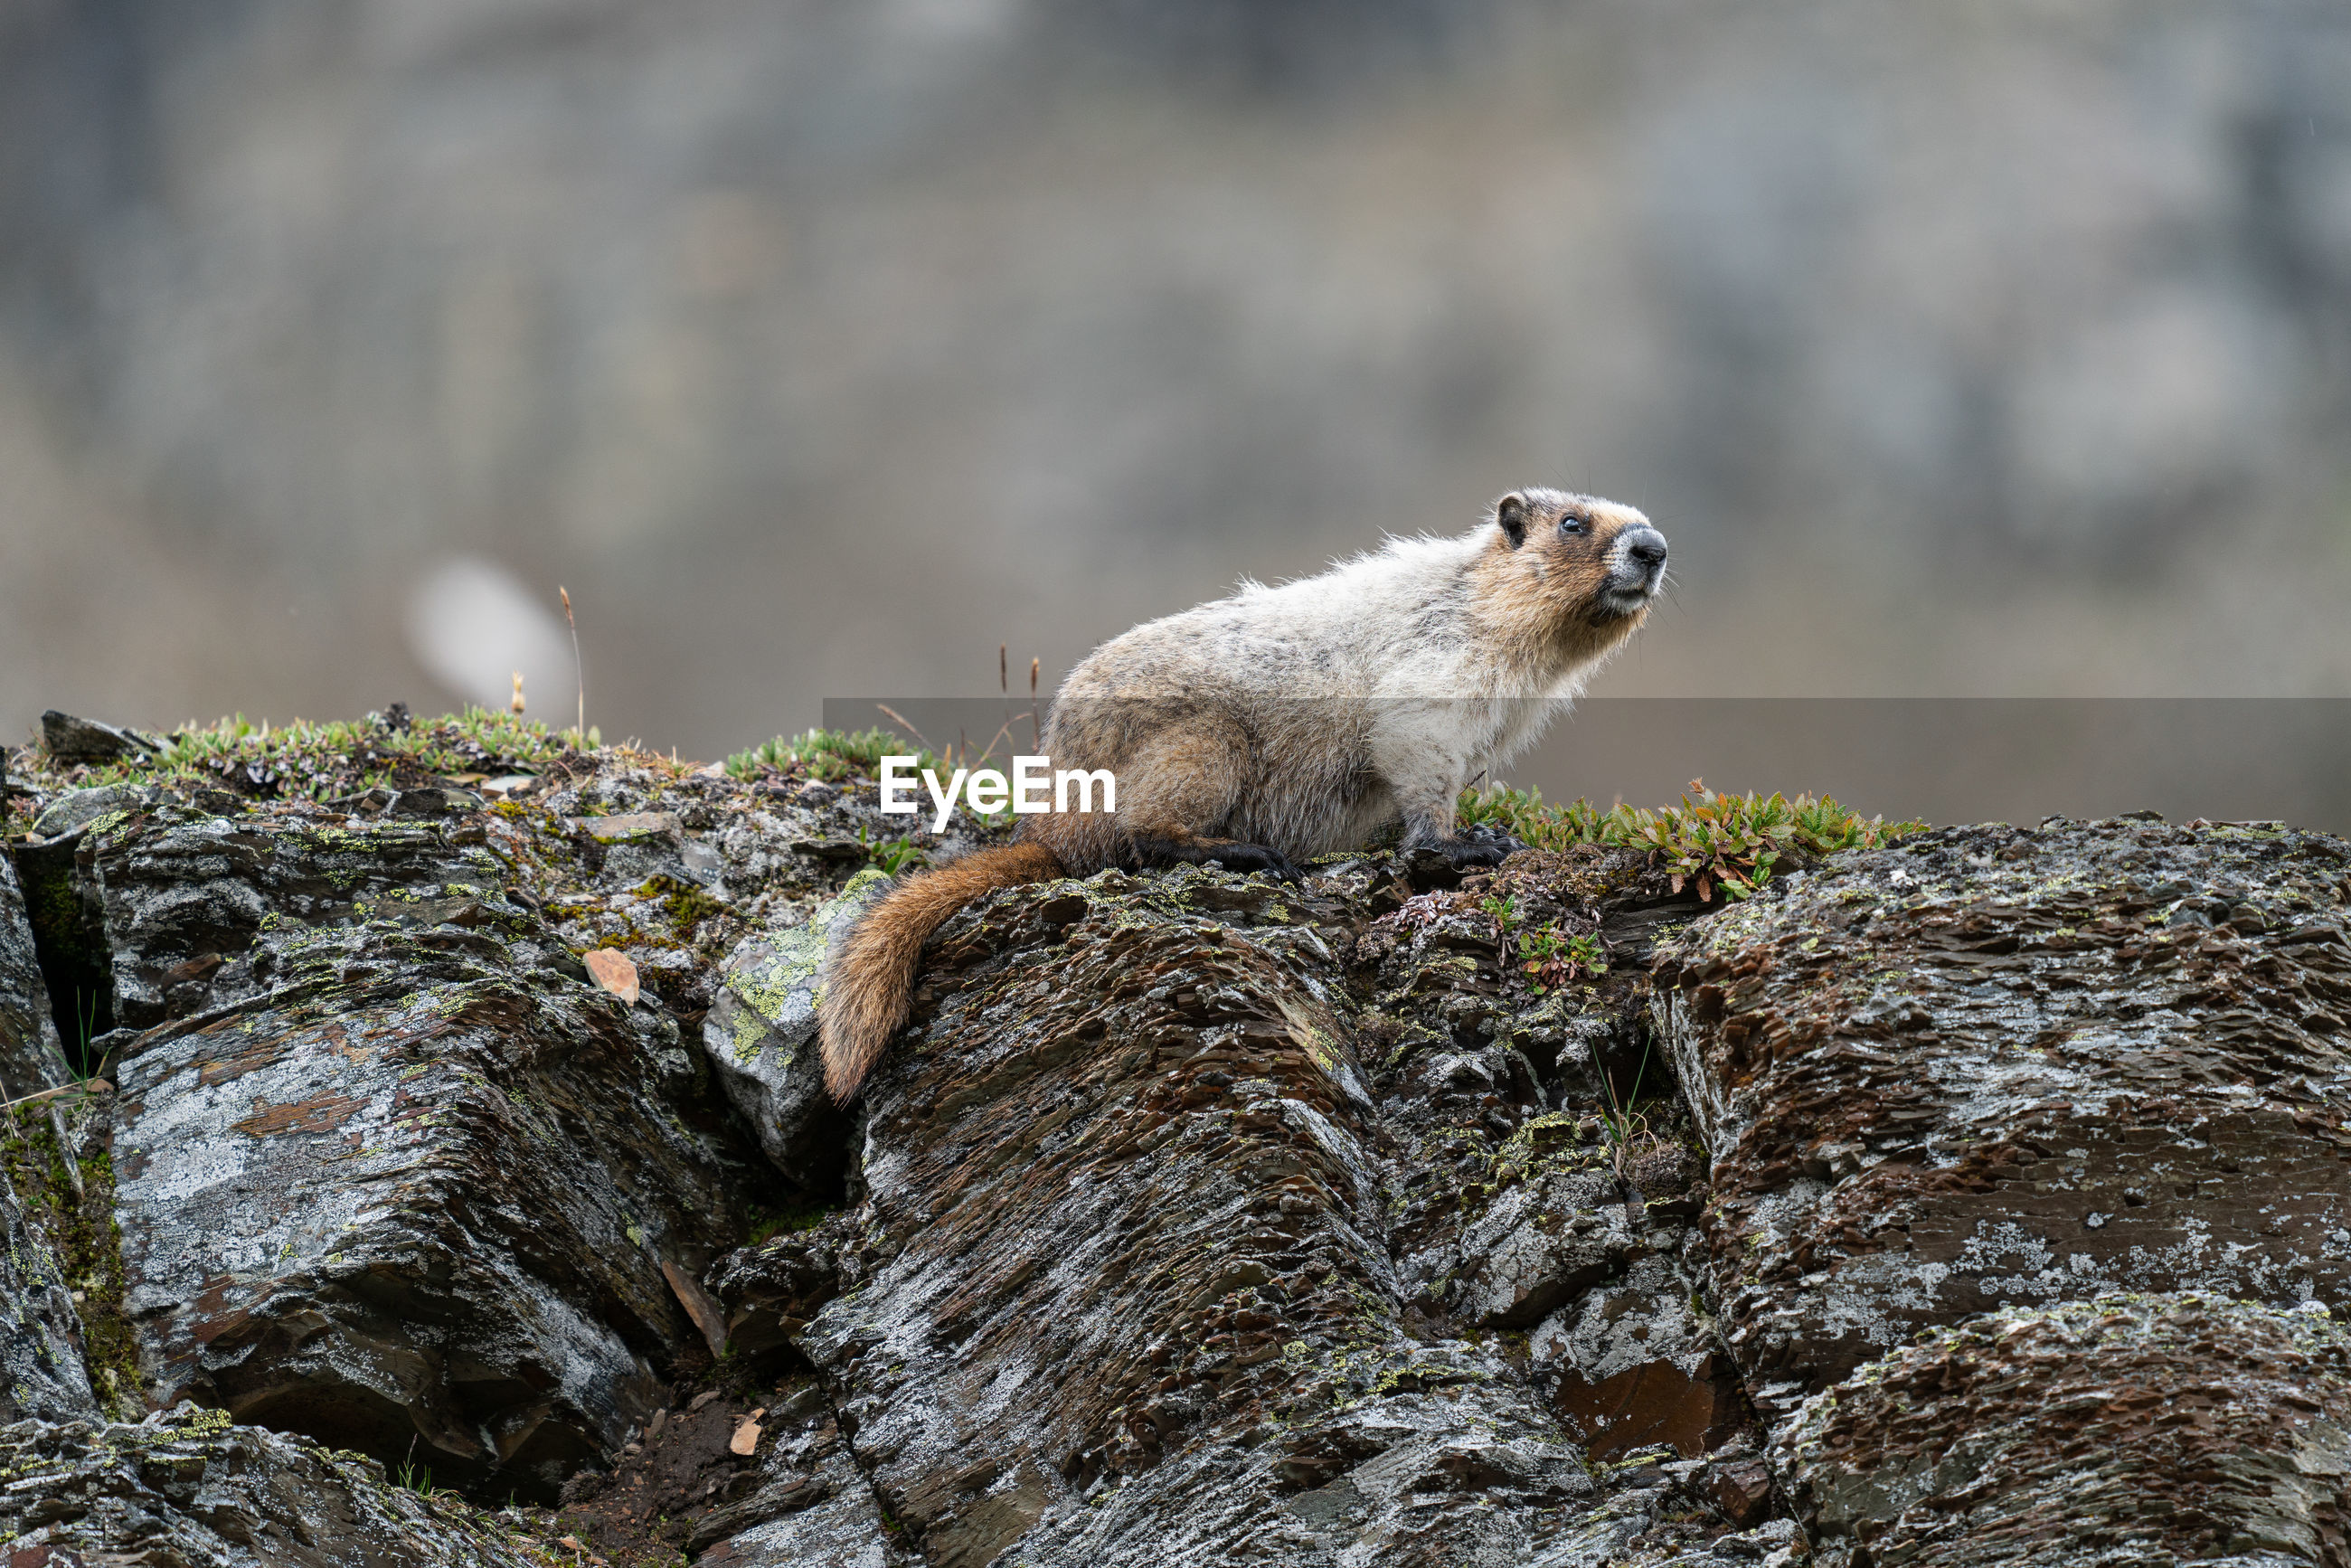 Hoary marmot sitting on wood